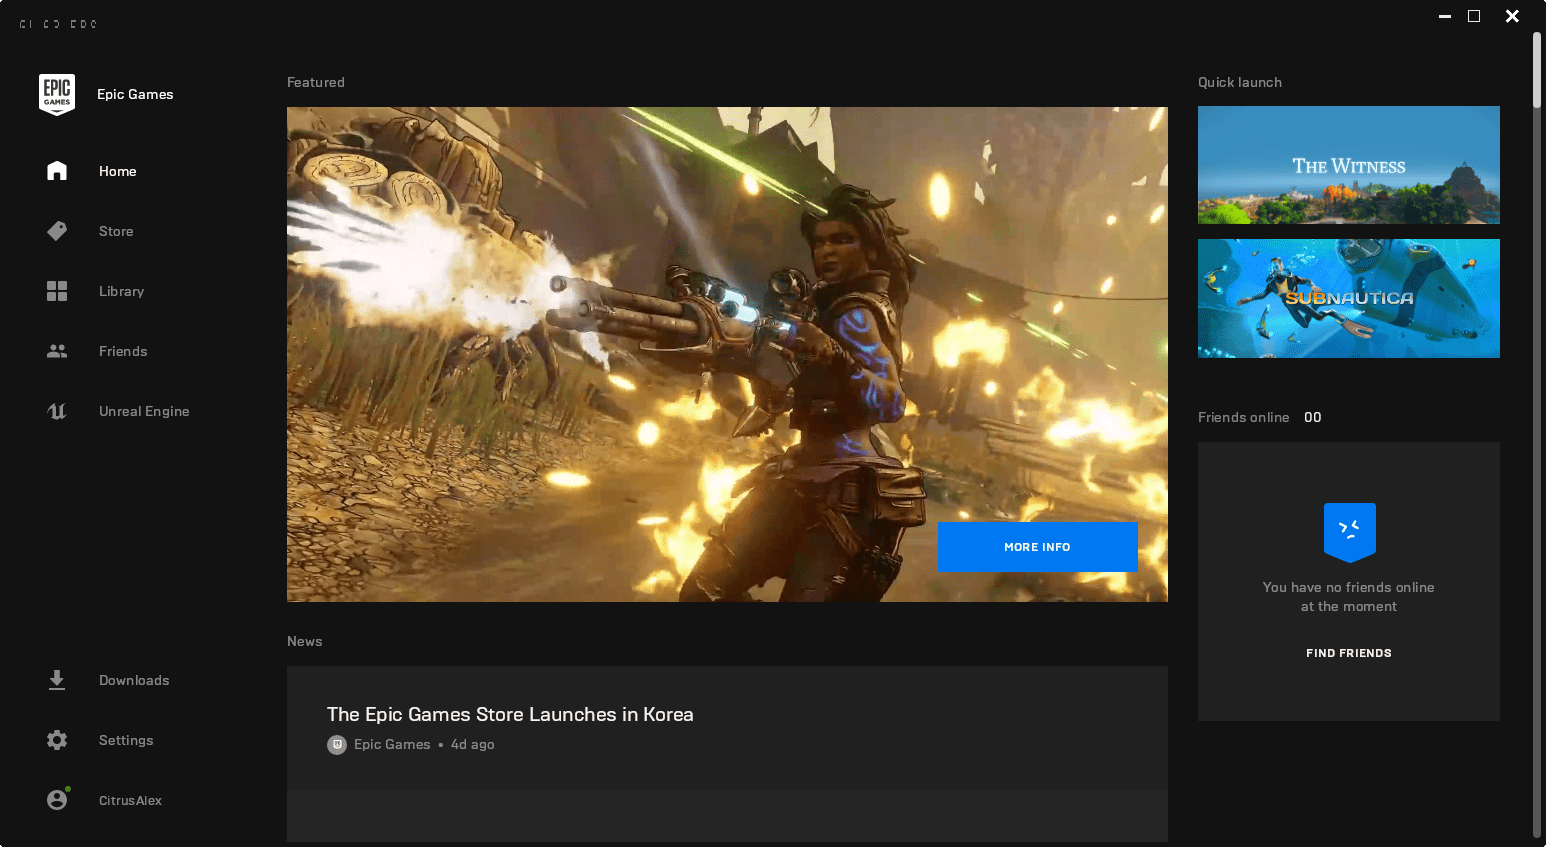 Epic Games Store on Linux